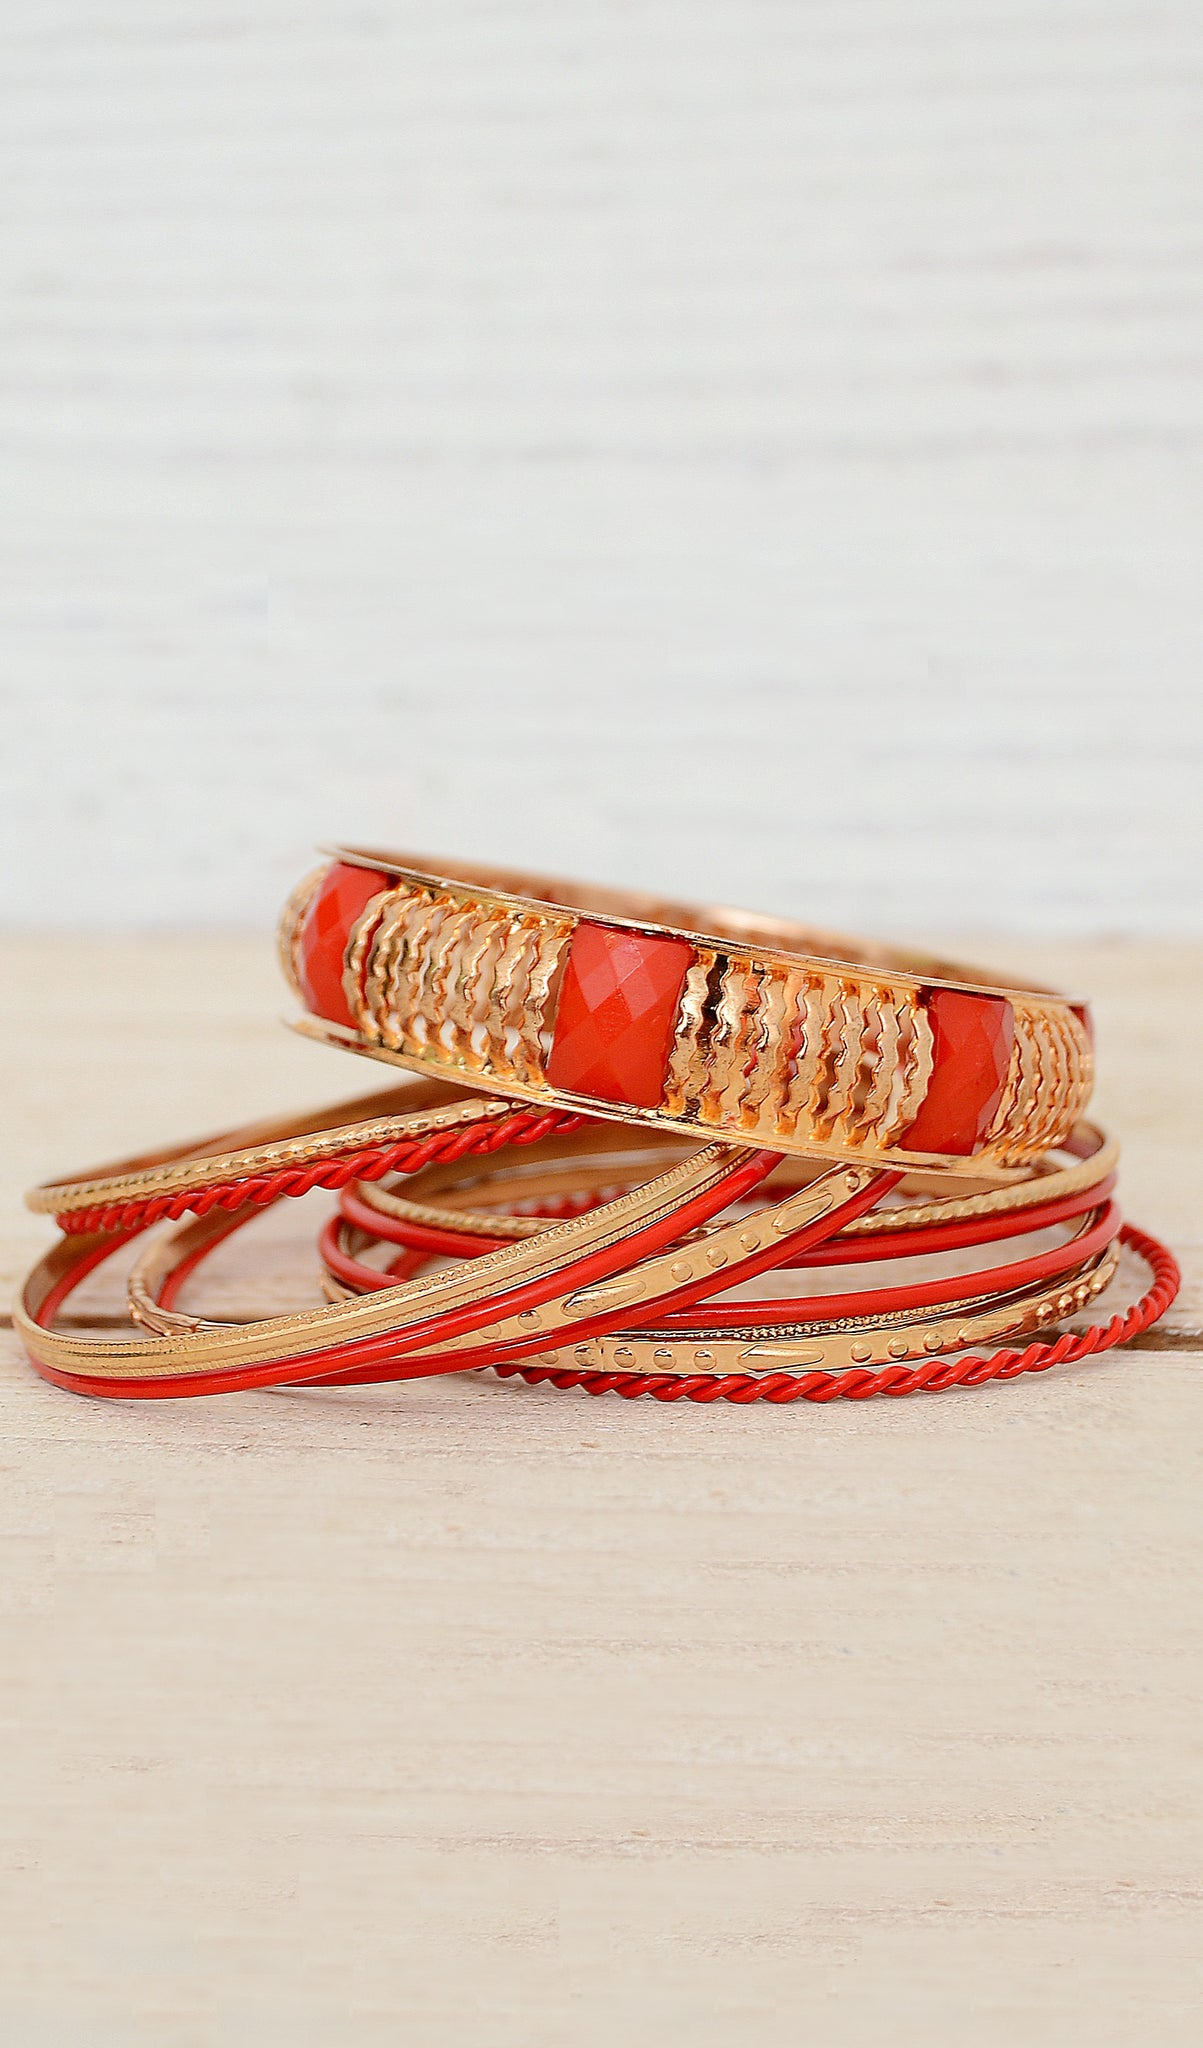 Women's Red/Gold Stackable Bracelet Set